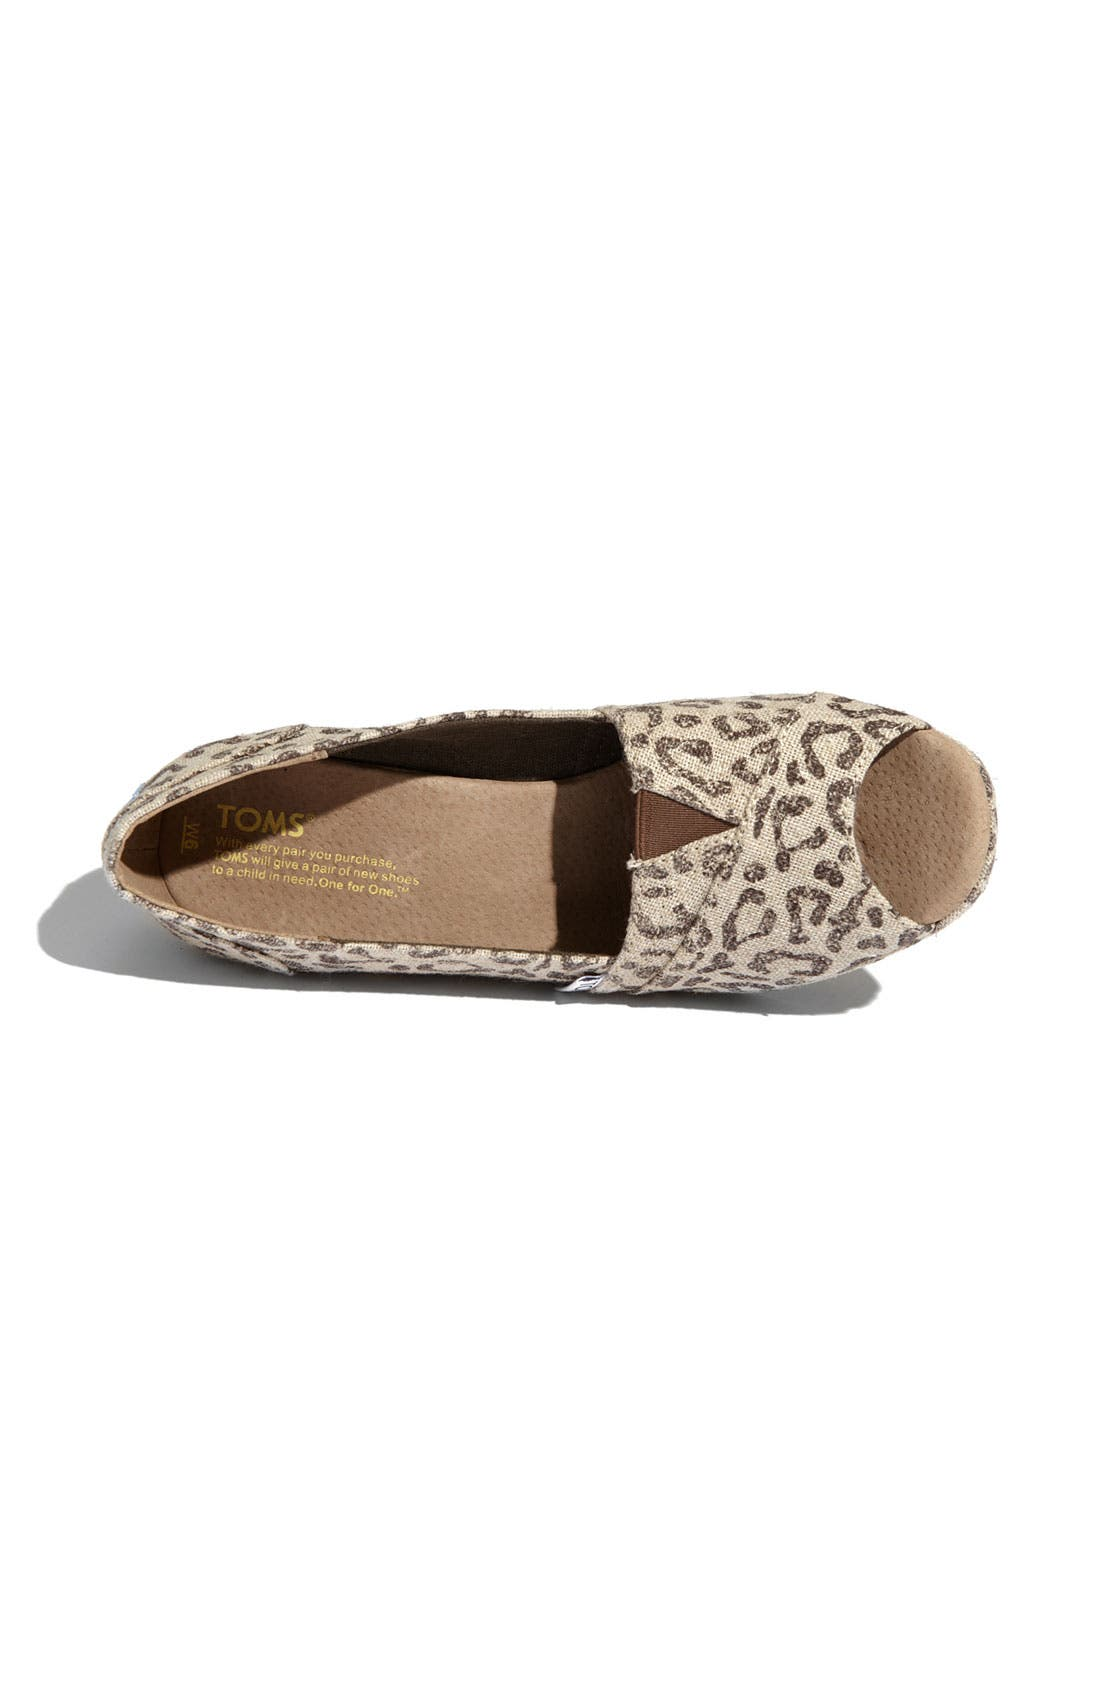 Alternate Image 3  - TOMS 'Snow Leopard' Burlap Wedge